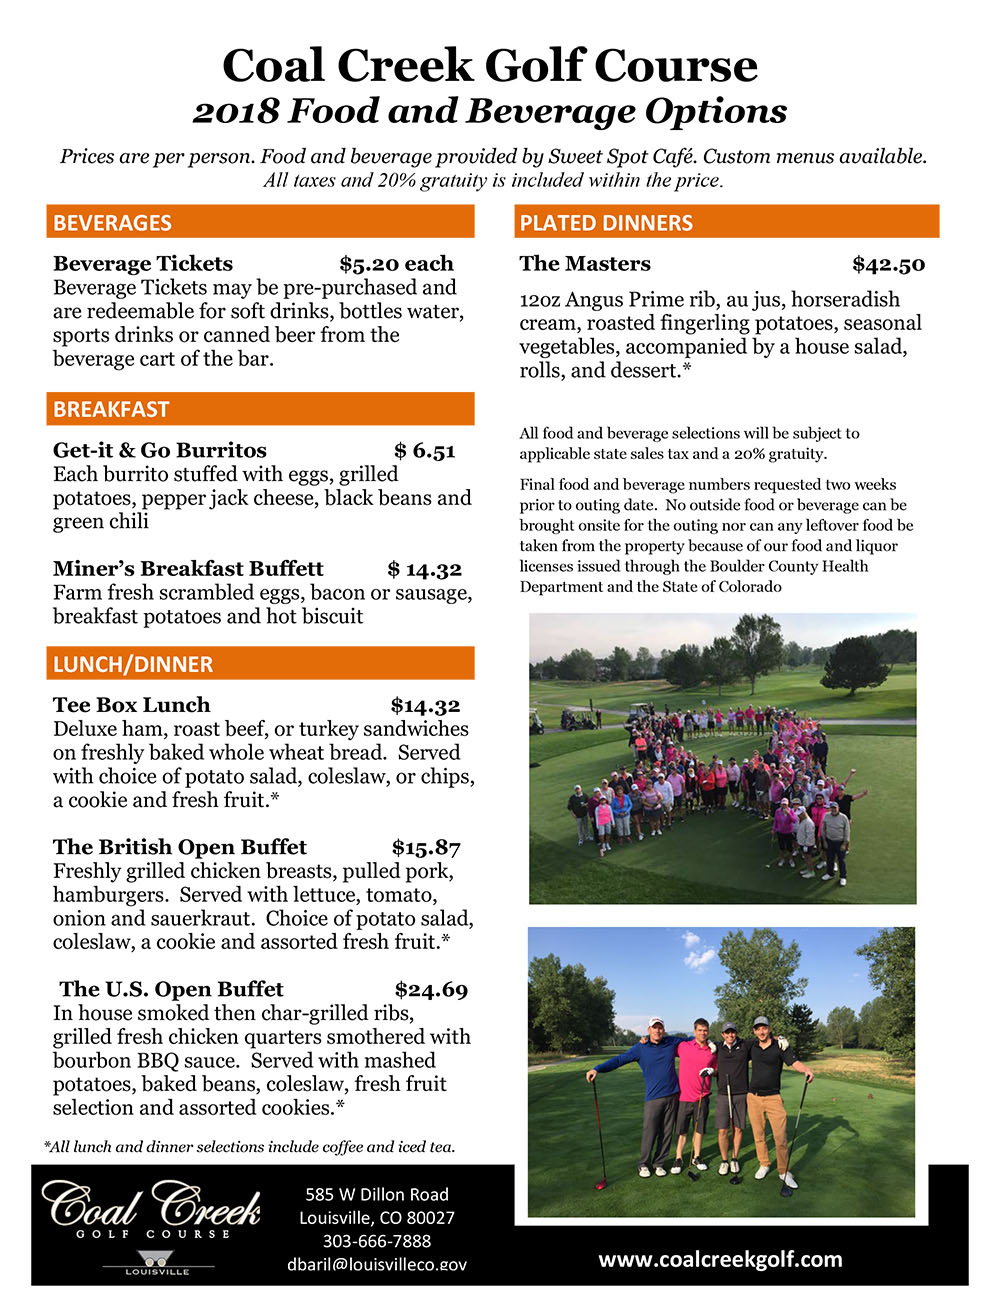 2018 Coal Creek Golf Course Outing Prices